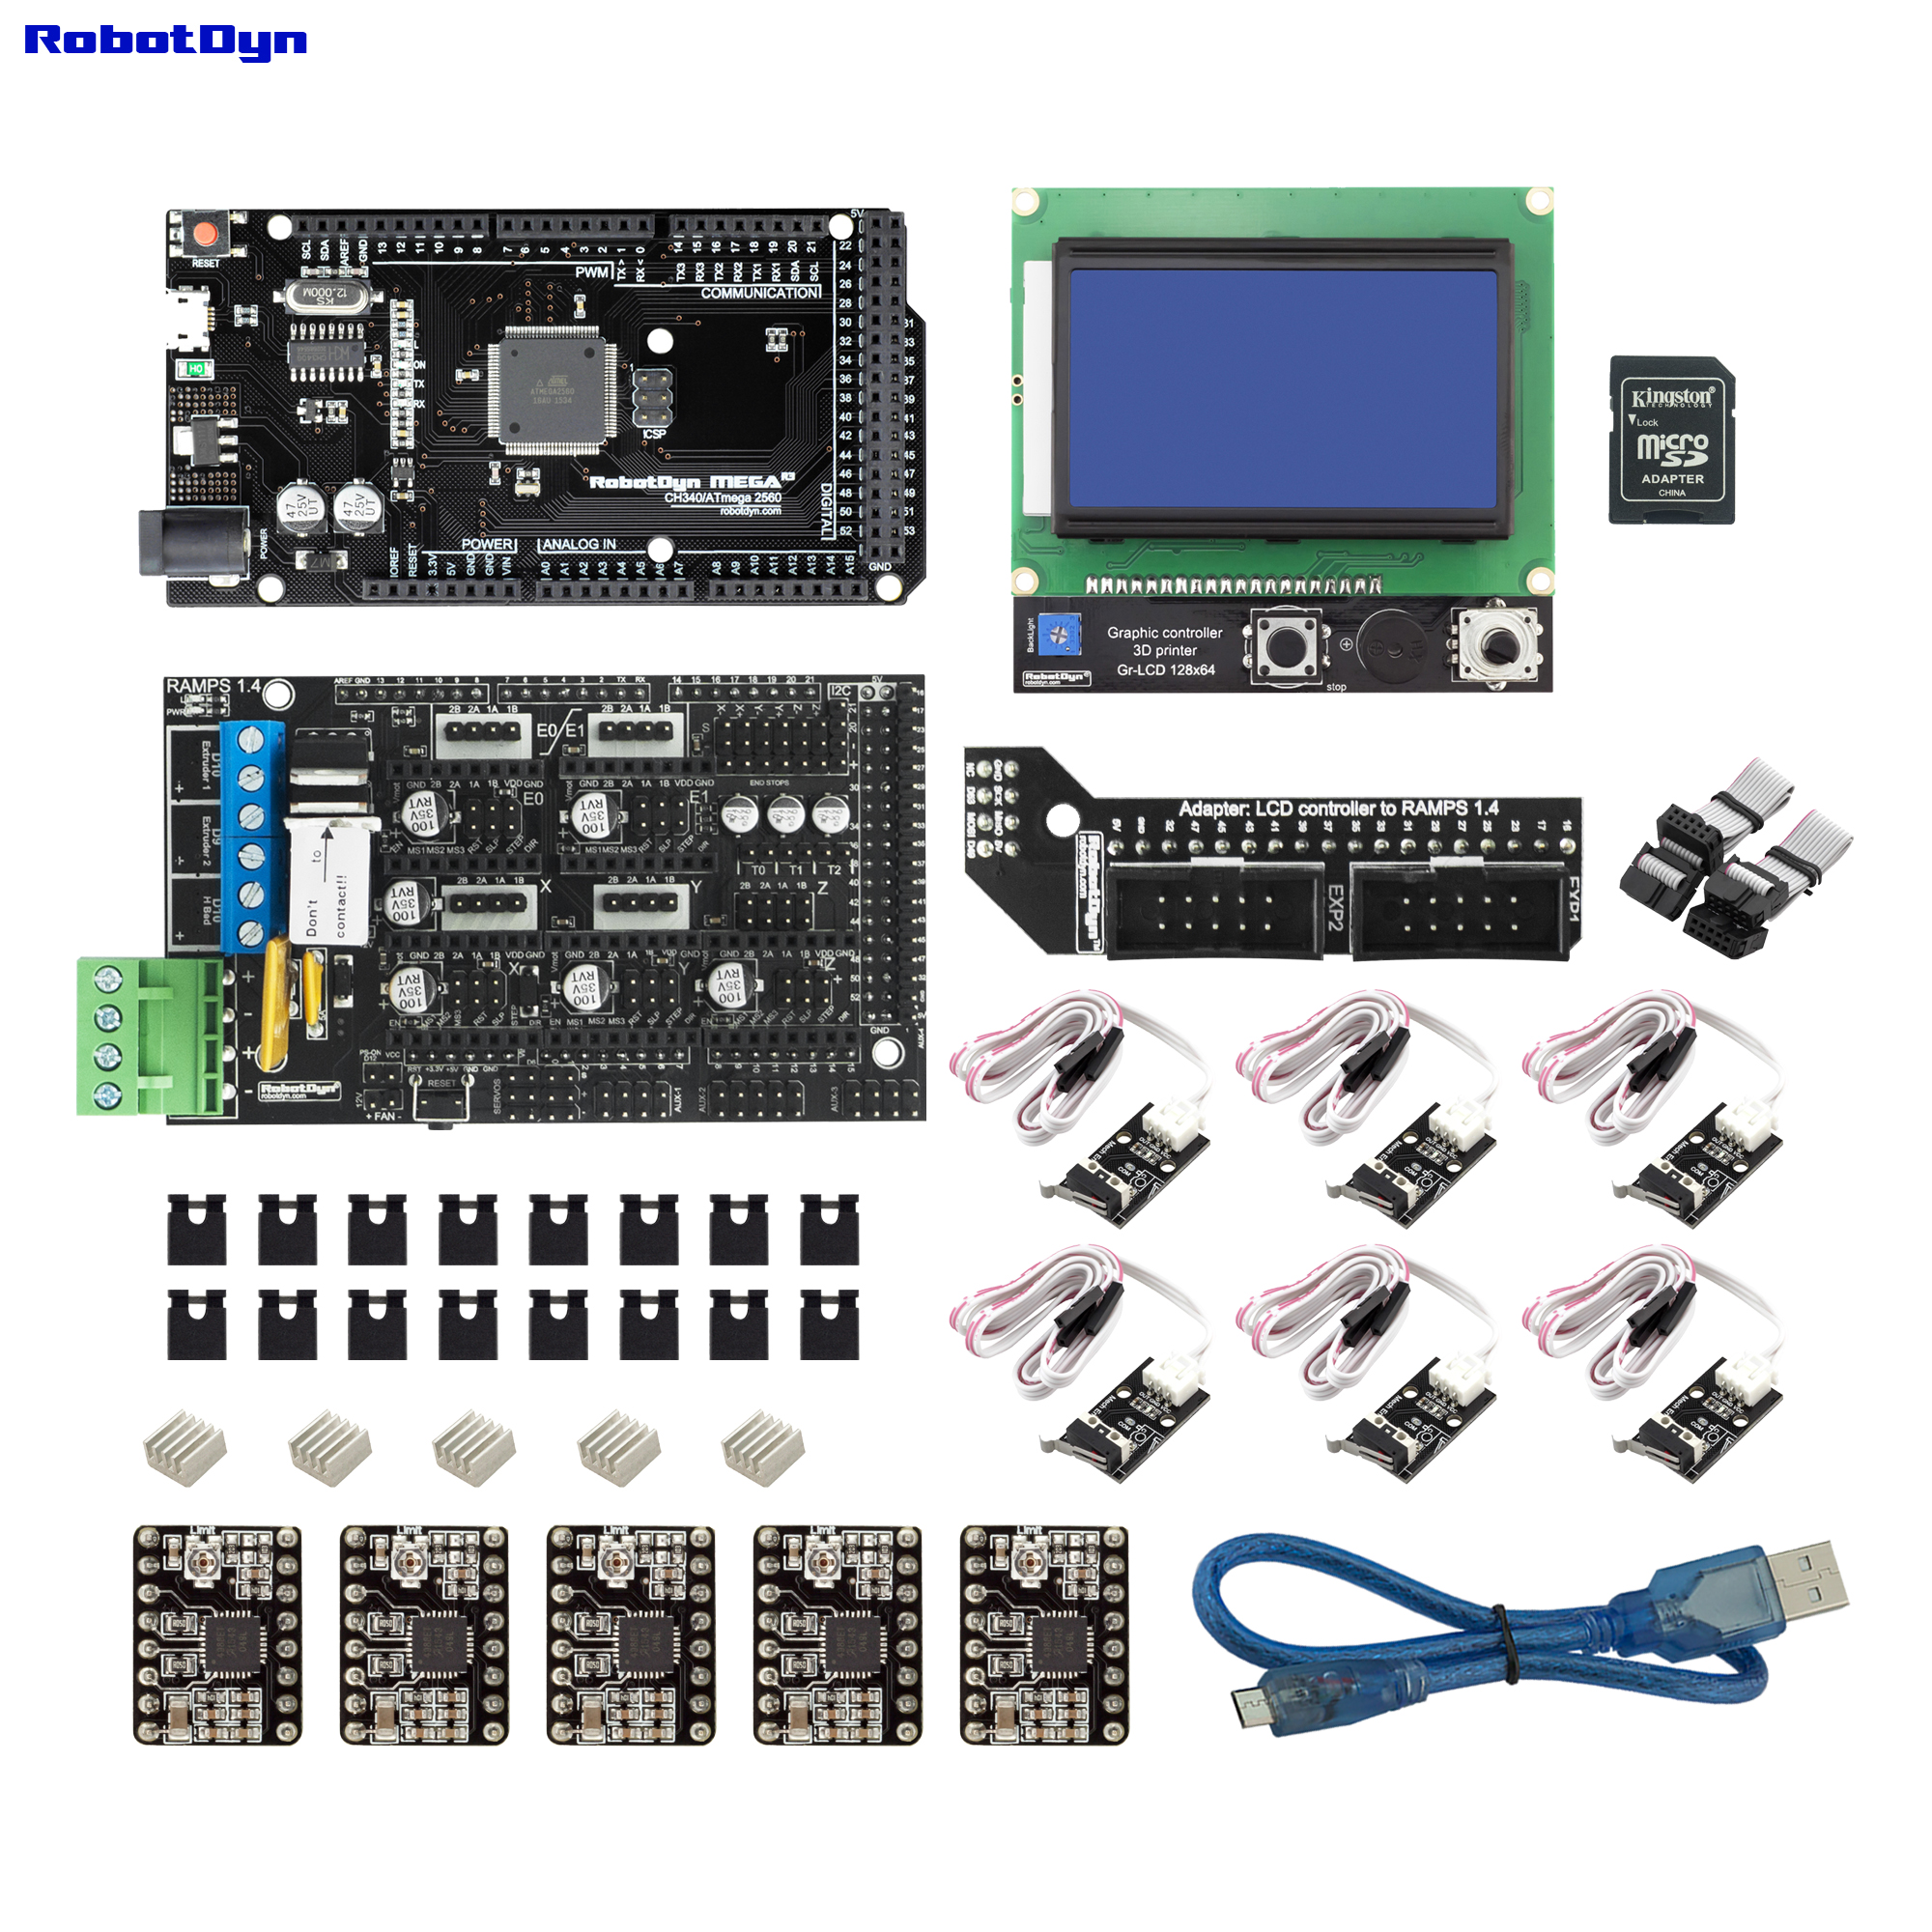 3D Printer & CNC KIT2. MEGA 2560 + RAMPS 1.4 + Graphic 128x64 Controller + Drivers + End-stop, Compatible For Arduino And RepRap